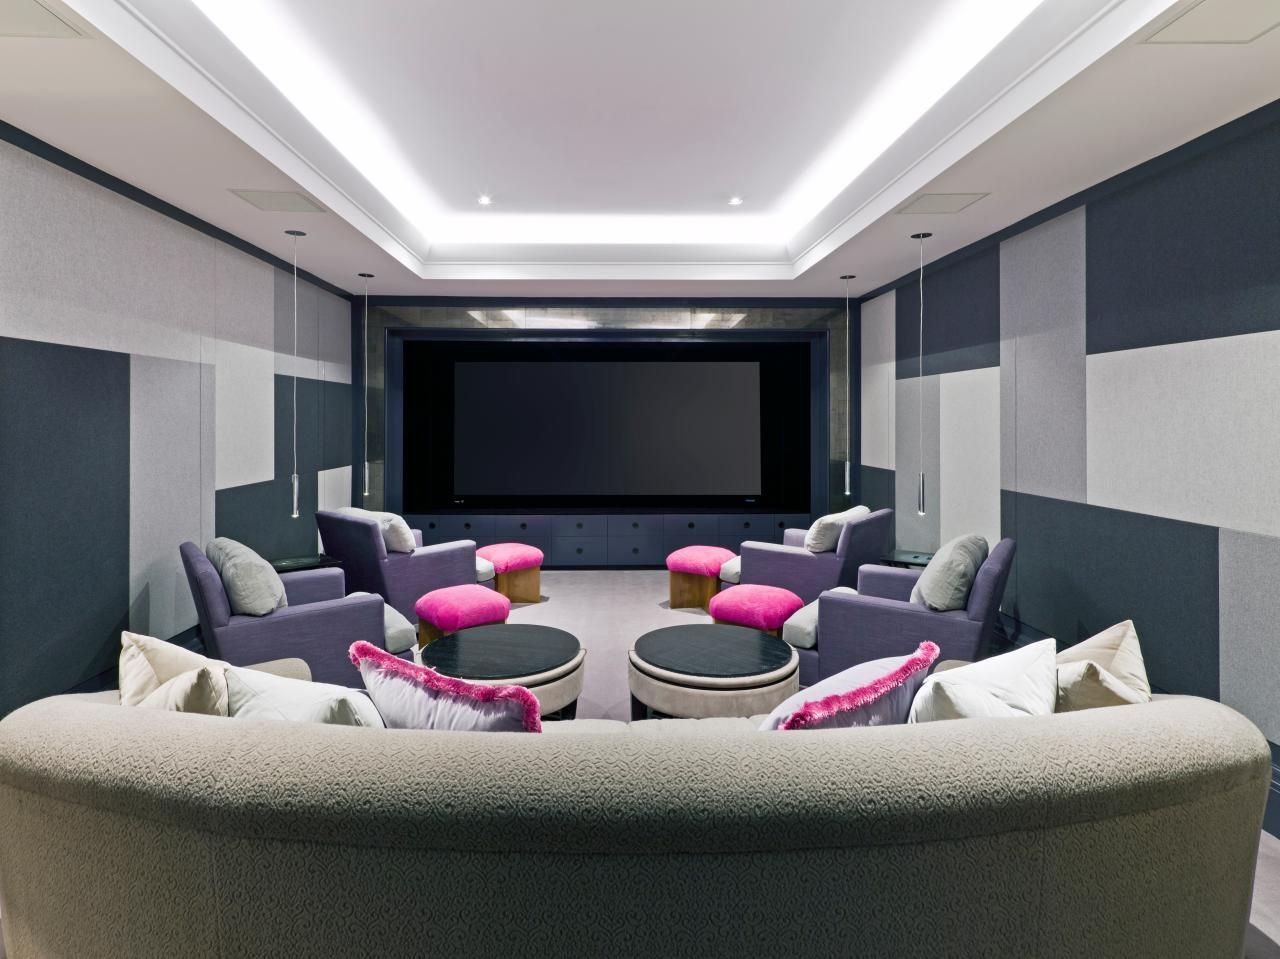 Amazing Home Theater Designs | Remodeling ideas, Theatre design and Hgtv